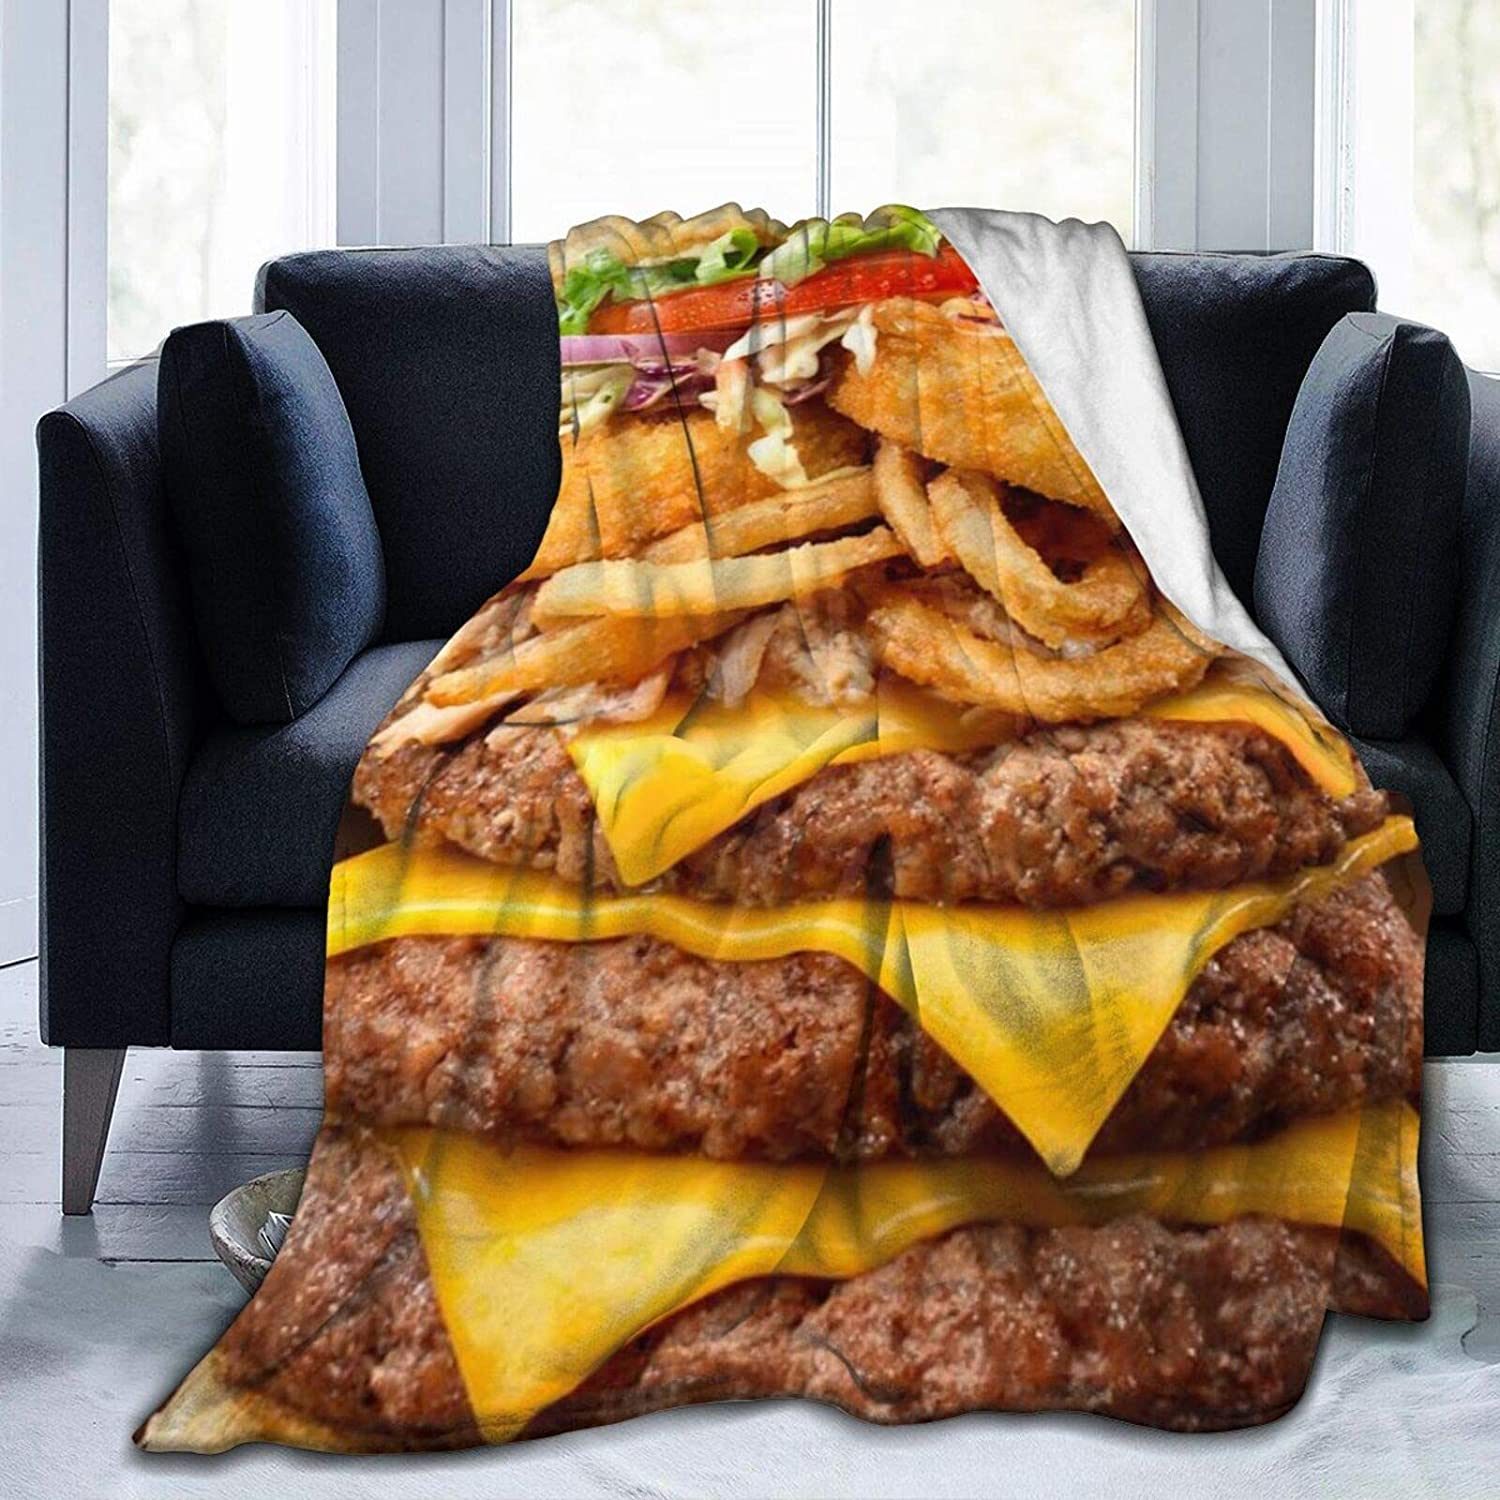 MFULEE Burger Food Retro Throw Blanket Super Soft Hypoallergenic Plush Bed Couch Living Room,Bed Warm for Adults & Kids 3D Print 80